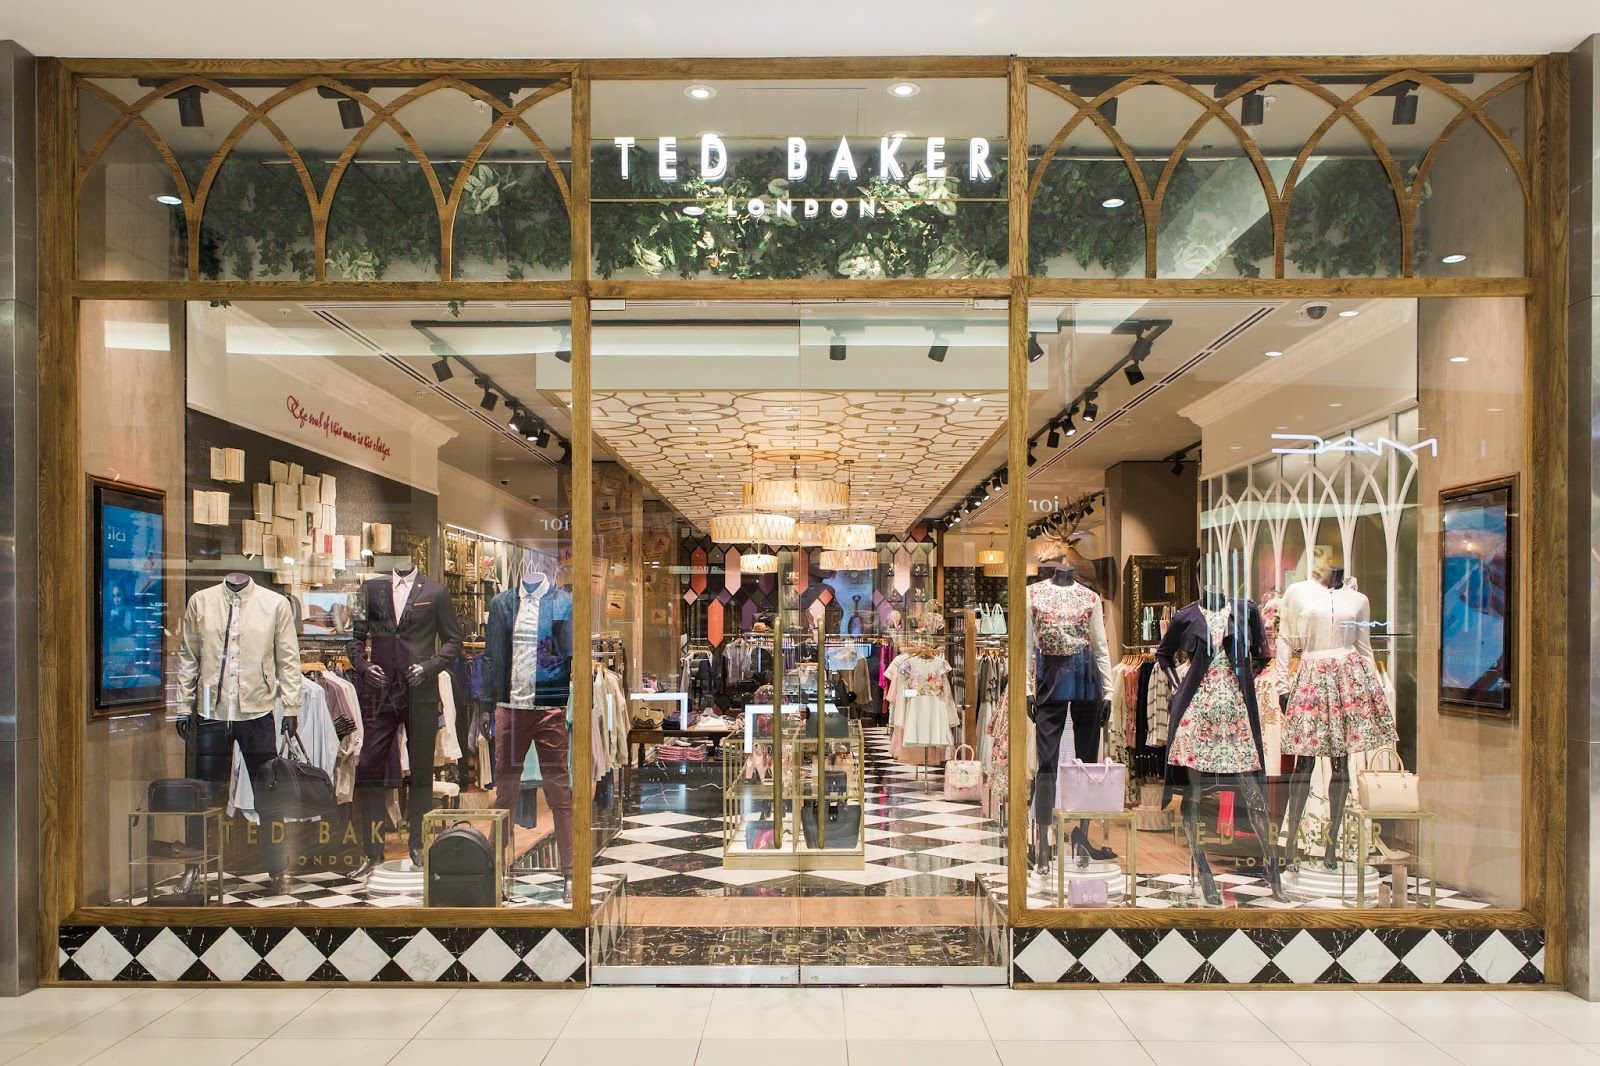 93b416a9e Ted Baker set its foot in South Africa.  tedbaker  Johannesburg   thelocationgroup  shopopening  storeopening  elocations